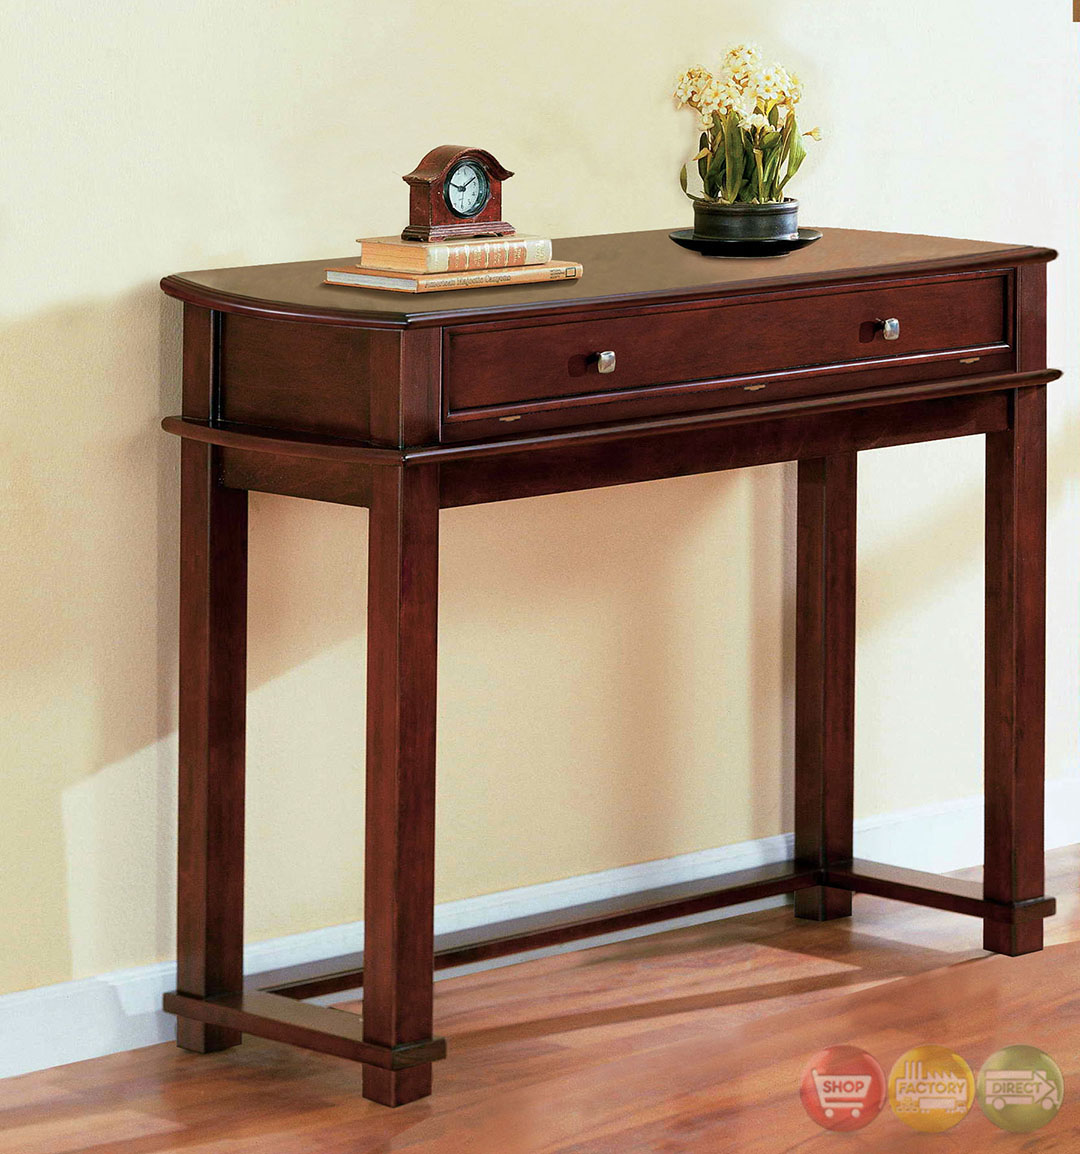 pine hurst cherry accent tables with 3 drawer coffee table. Black Bedroom Furniture Sets. Home Design Ideas